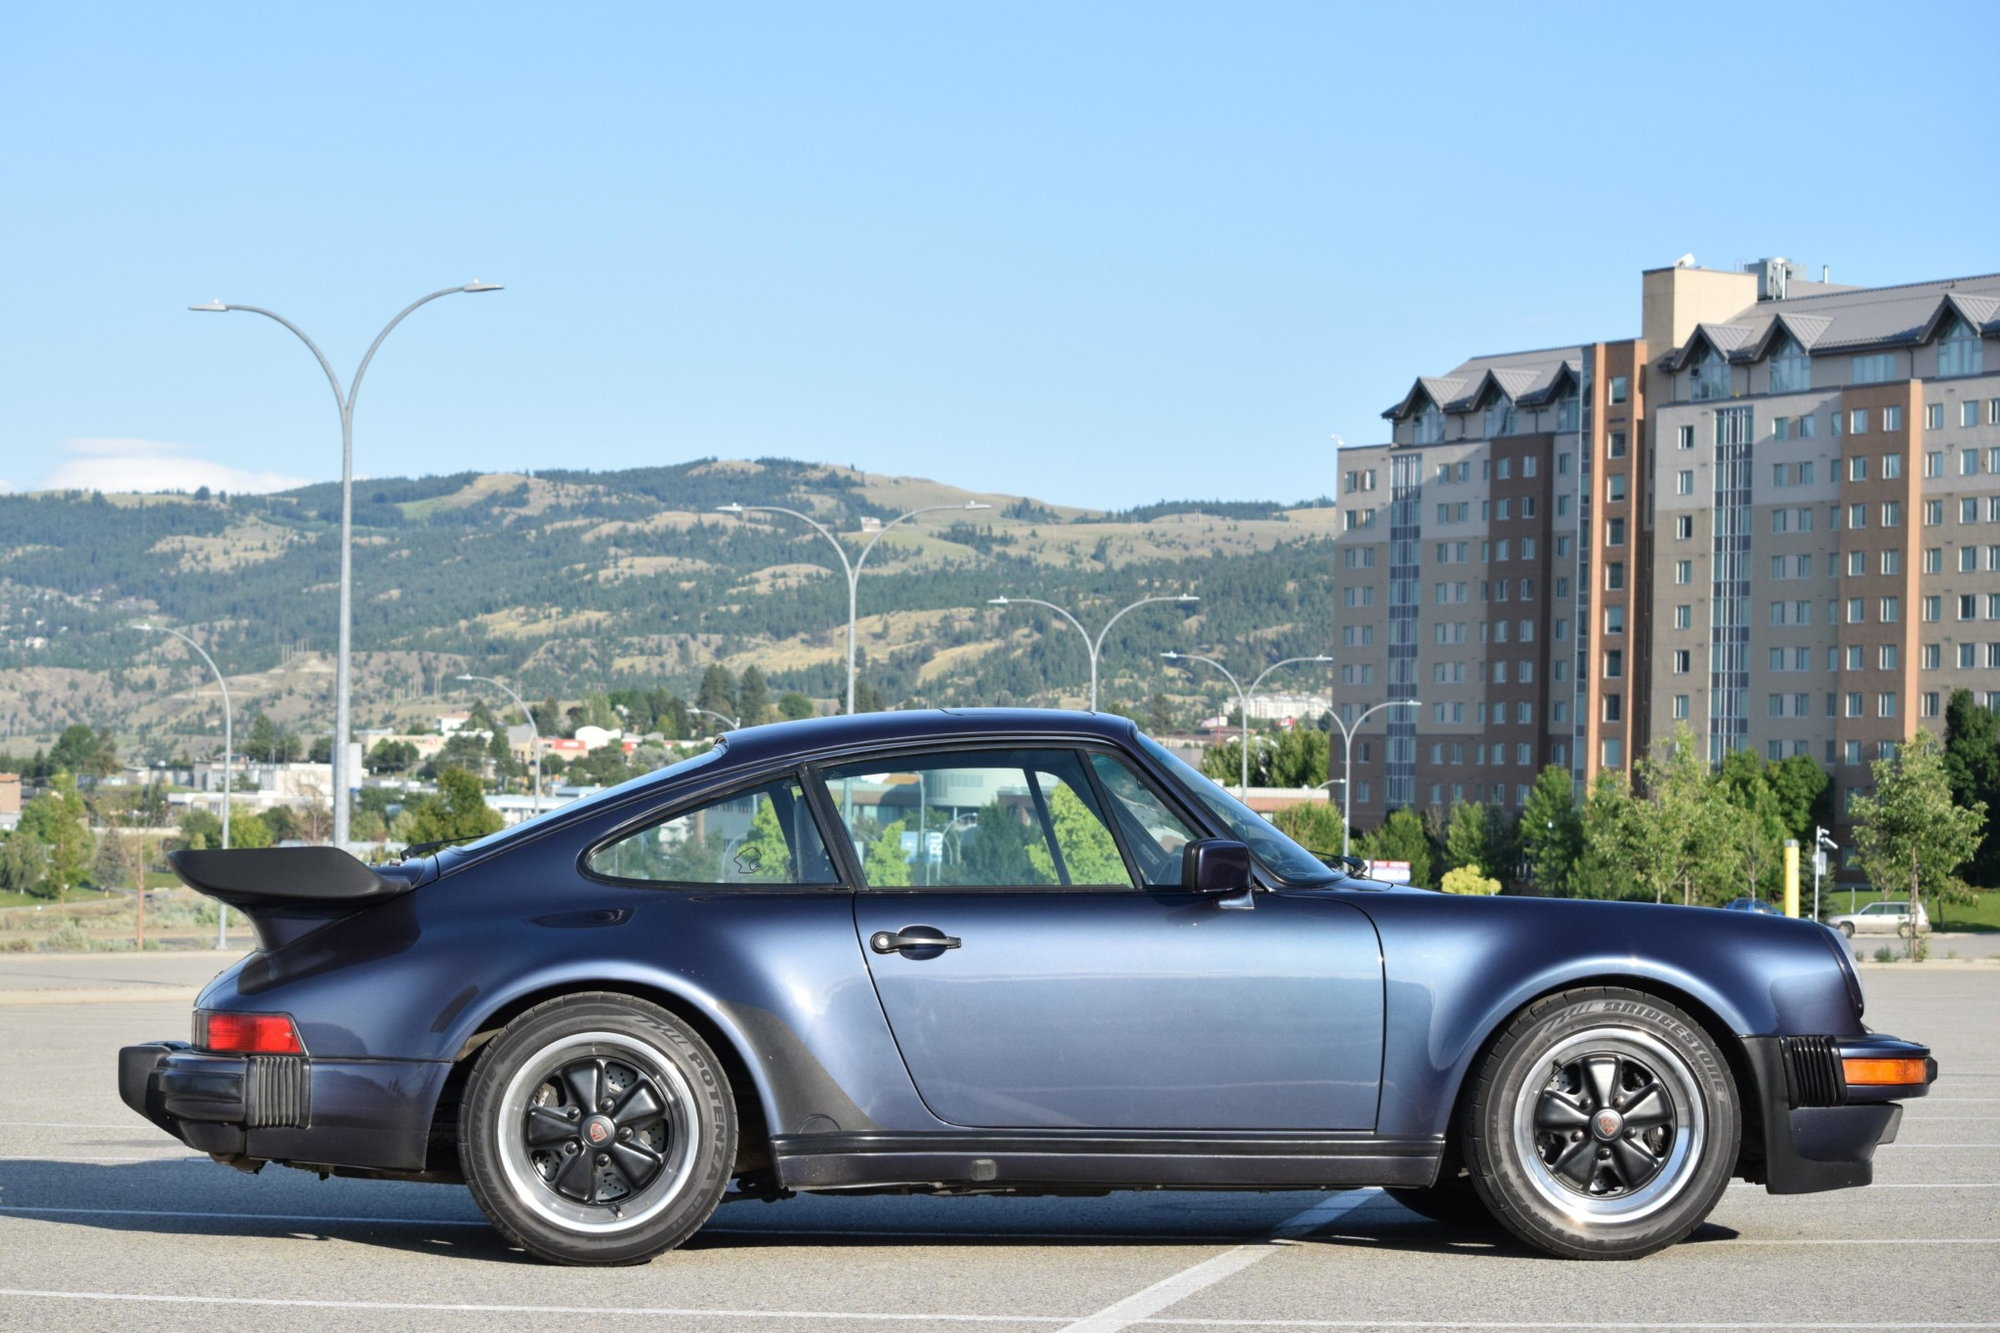 1986 Porsche 930 Turbo Rare Color Rennlist Porsche Discussion Forums